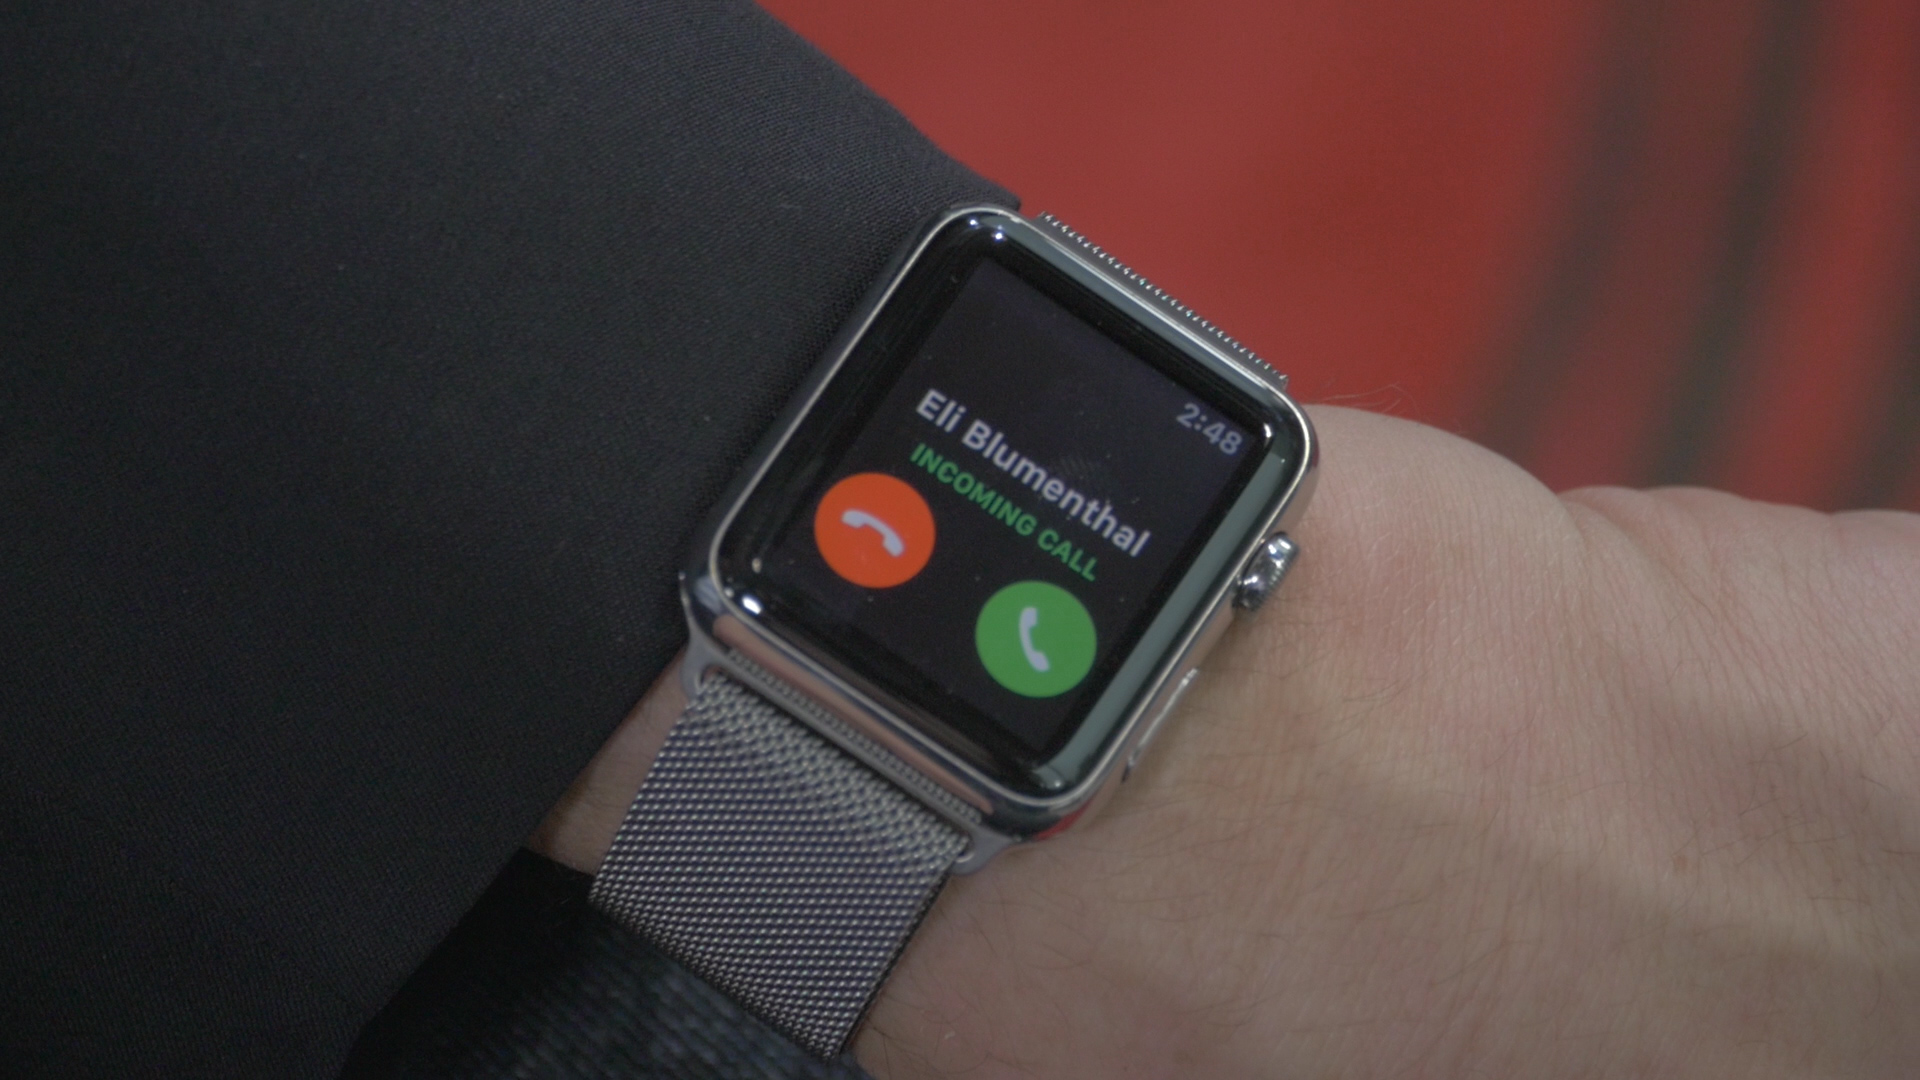 Calling all Apple Watch fans - how does it handle calls?